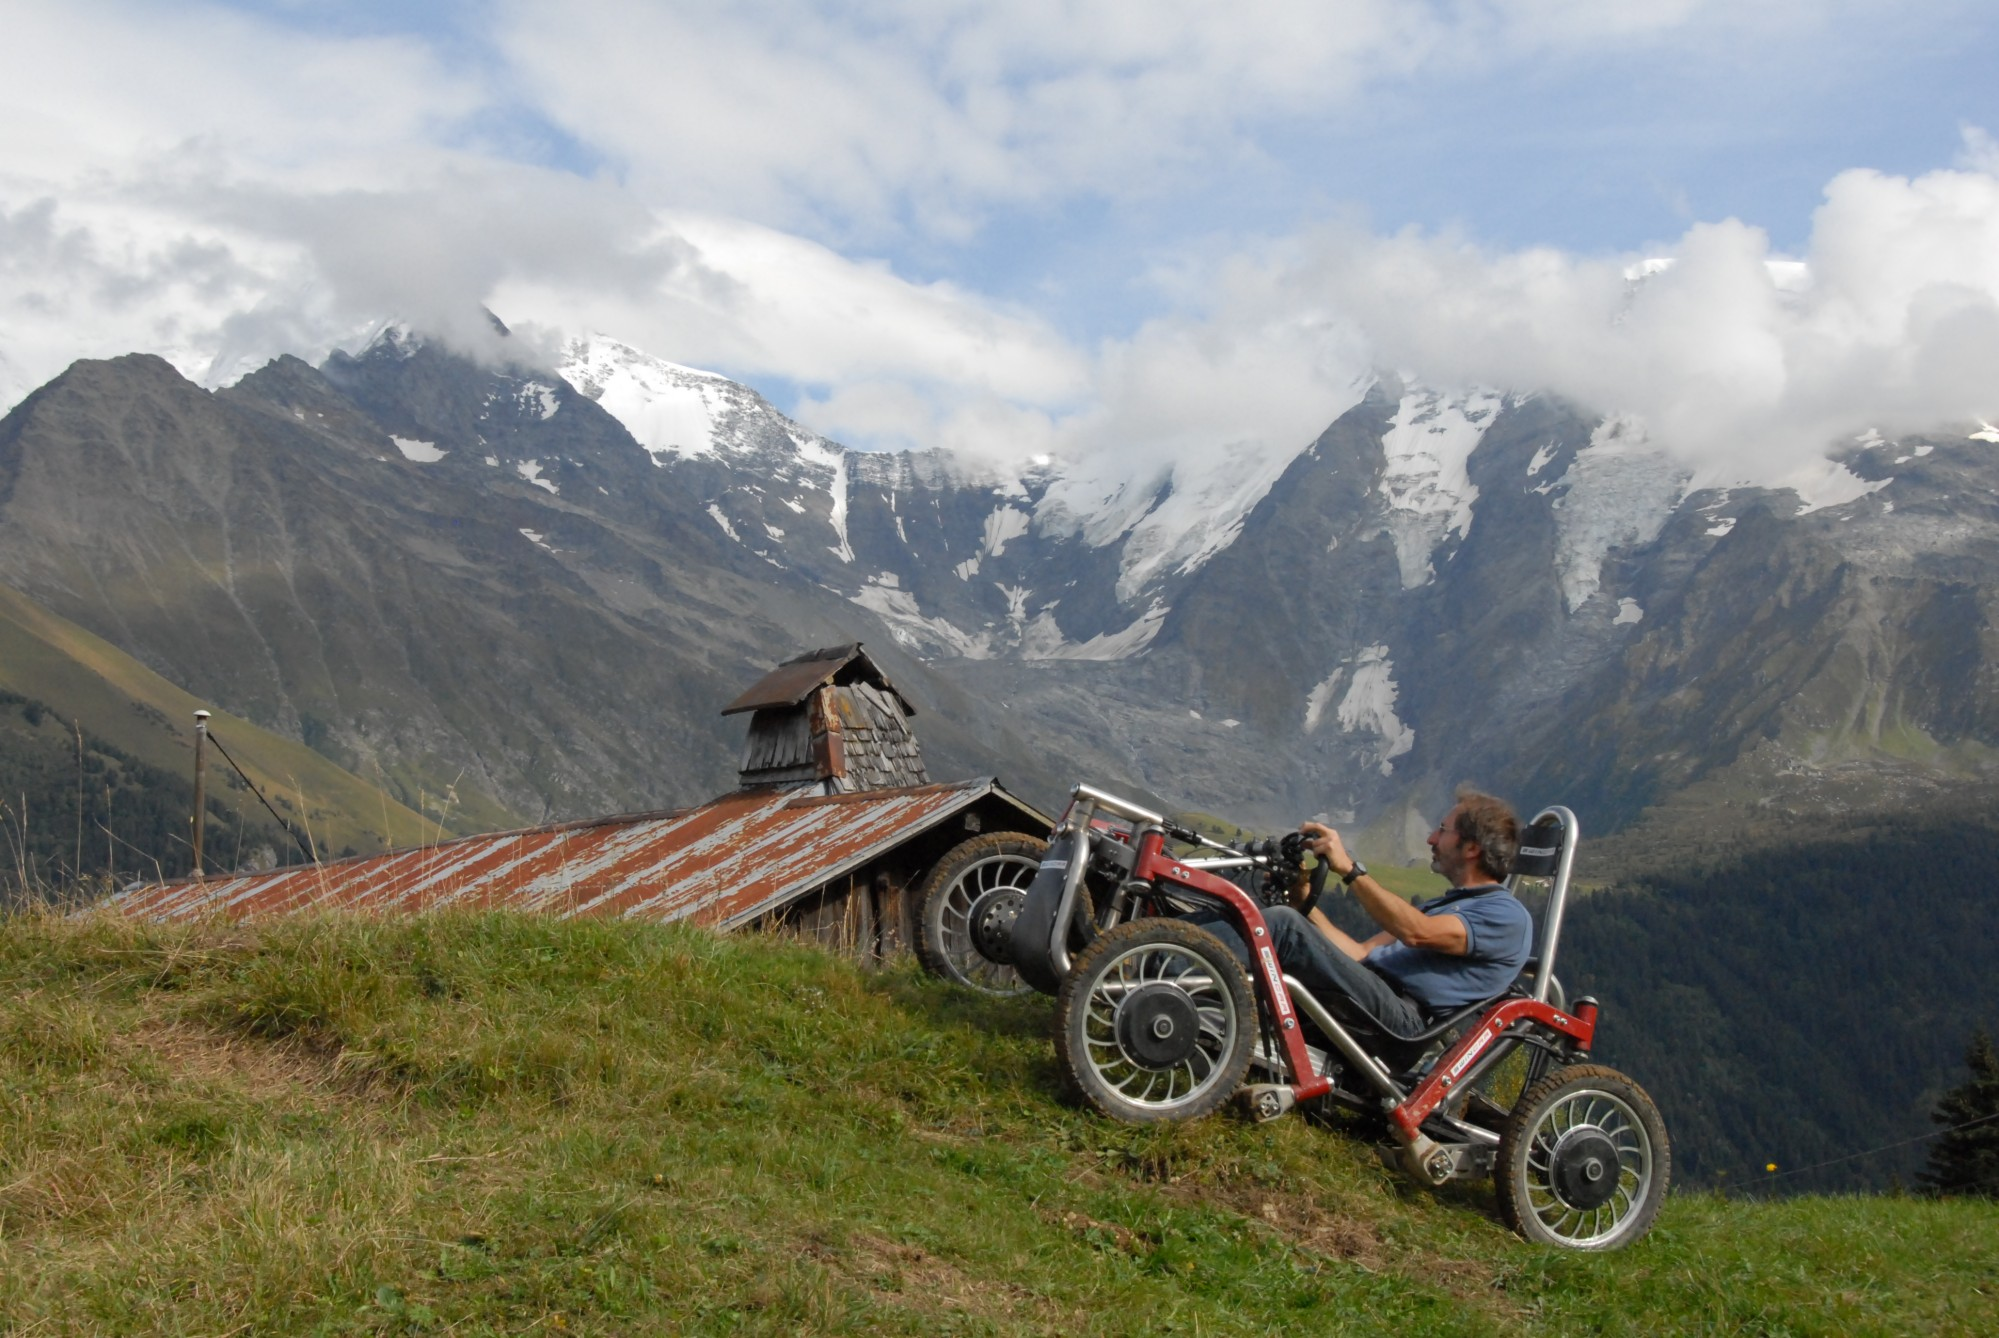 Swincar Spider, An Extremely Nimble Off-Road Electric Car